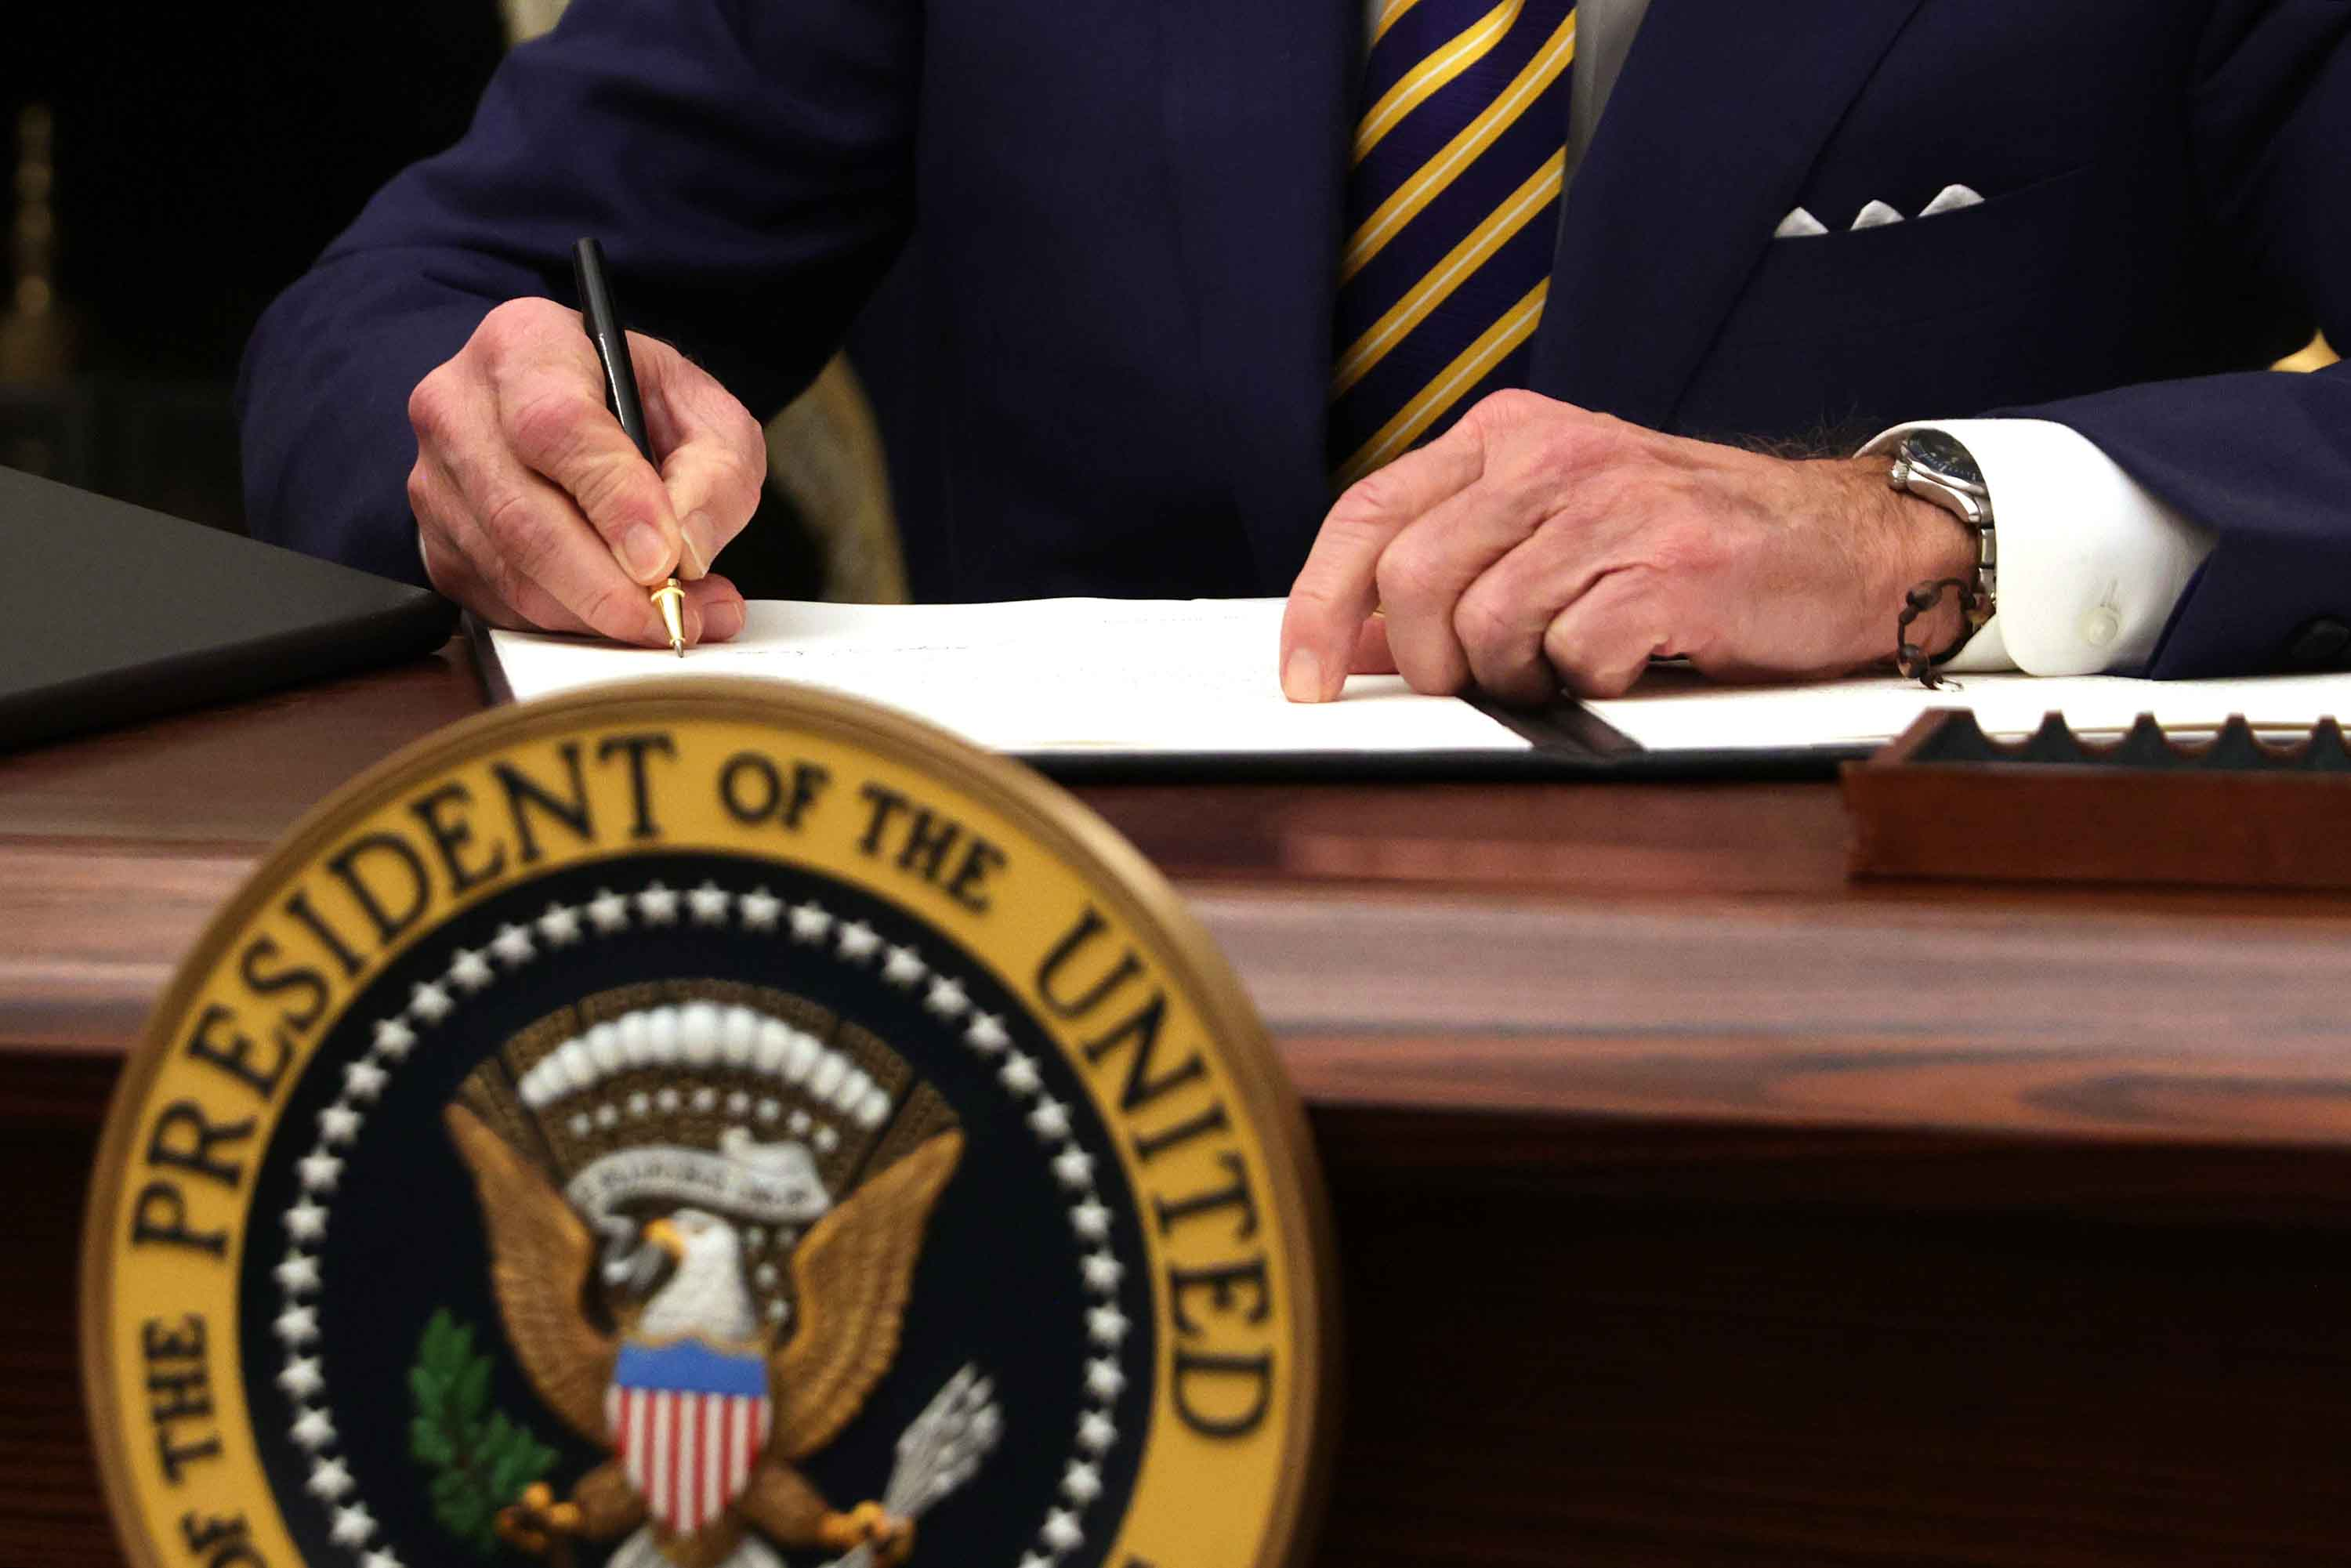 President Biden signs an executive order during an event on economic crisis at the White House in Washington, DC on January 22.